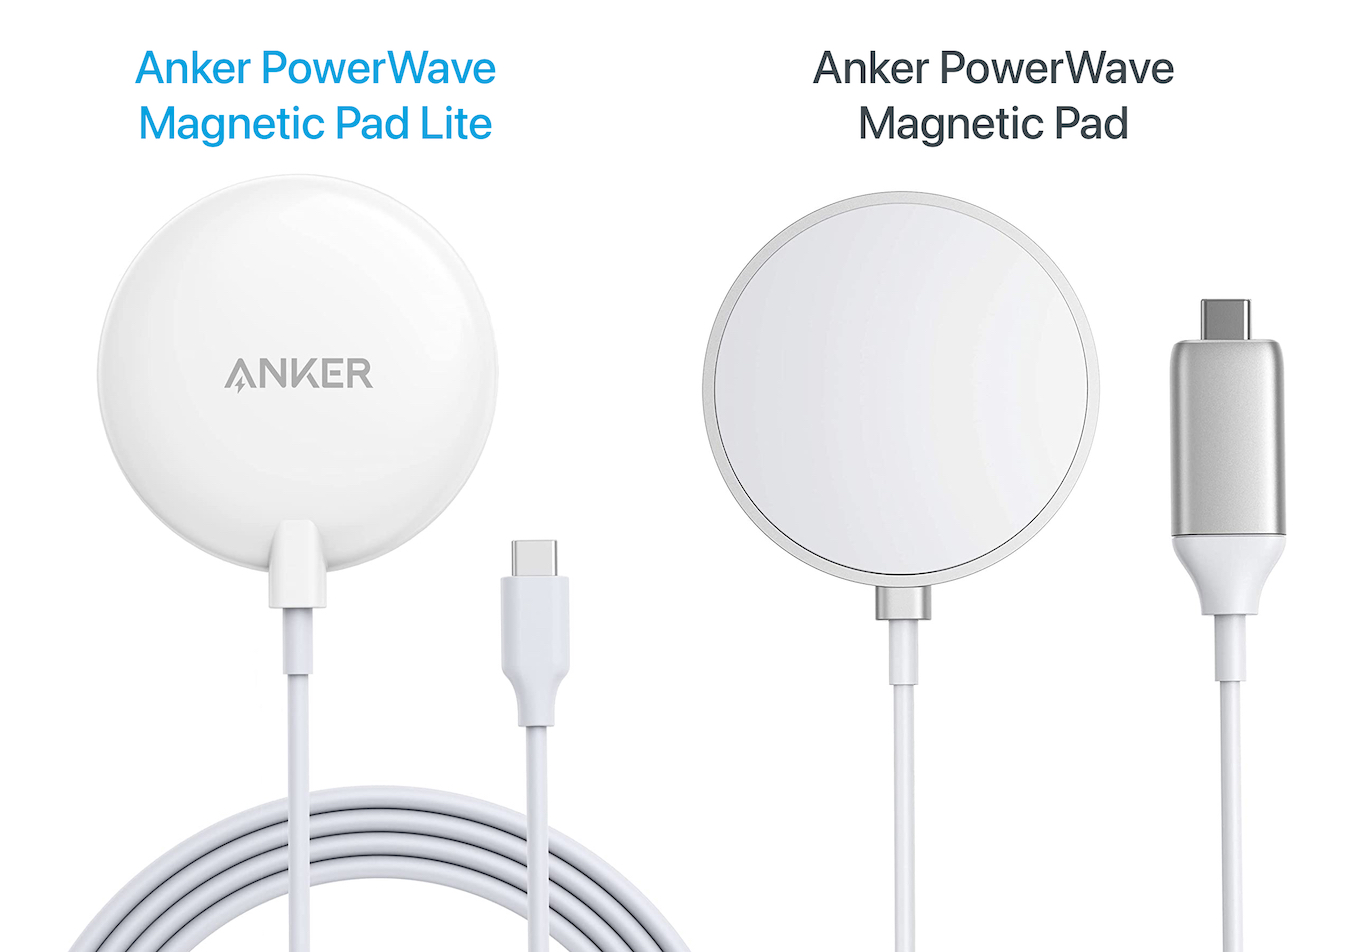 Anker PowerWave Magnetic Pad and Lite